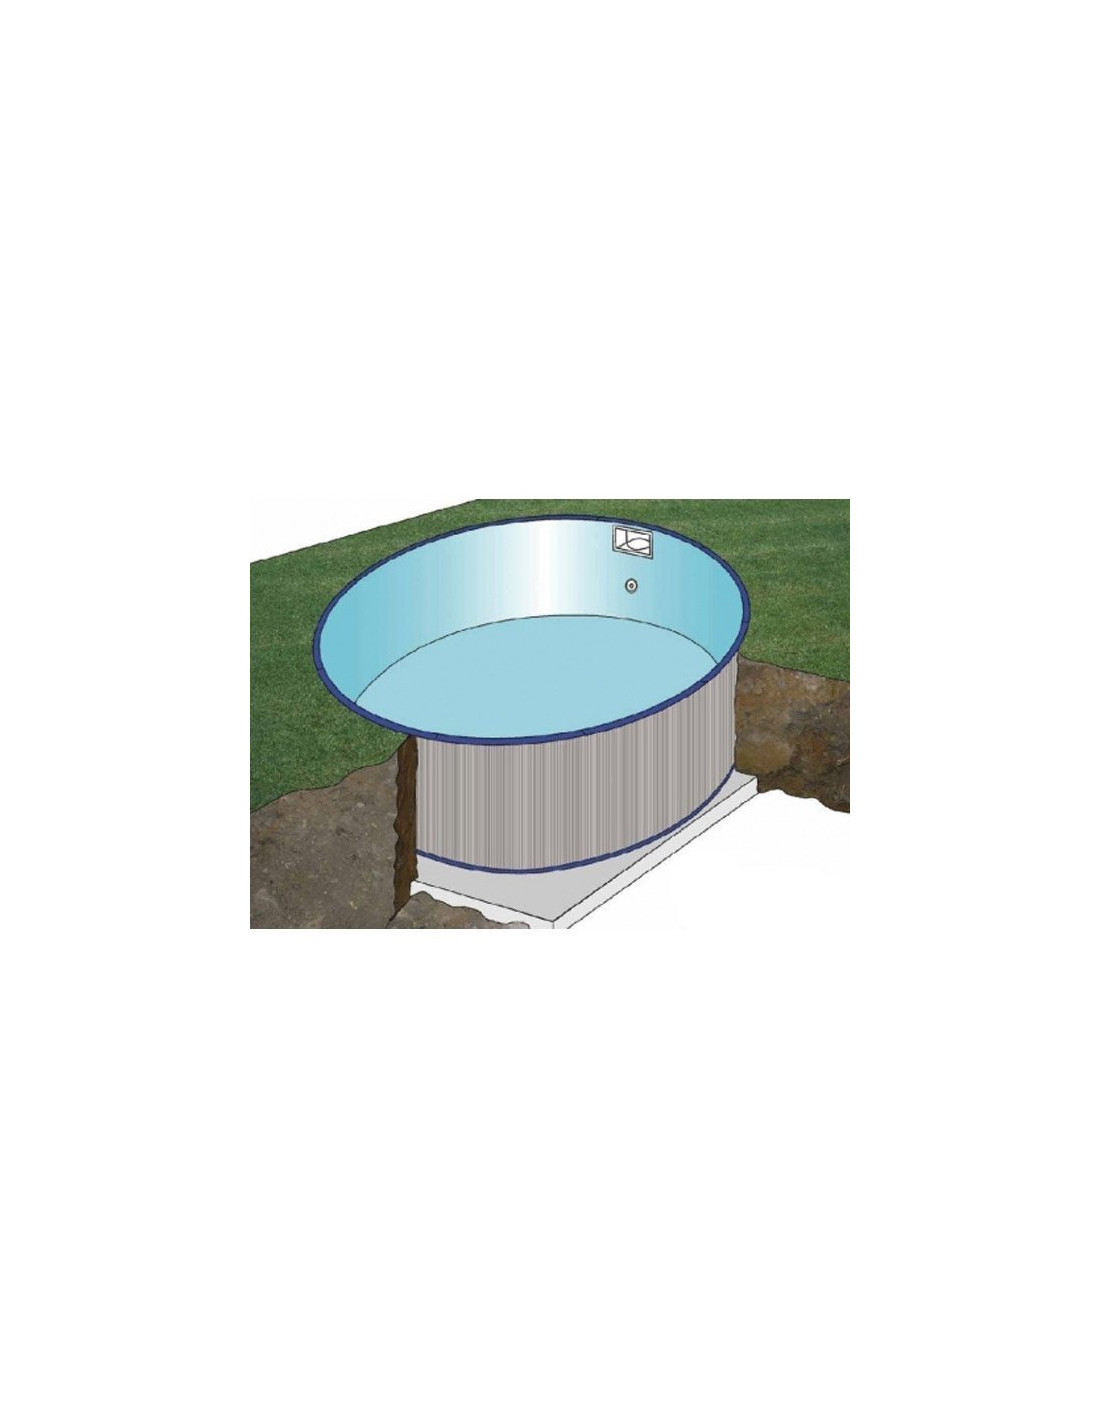 Kit piscine enterr e ronde star pool 4 60 3 50 cm x for Piscine enterree en kit